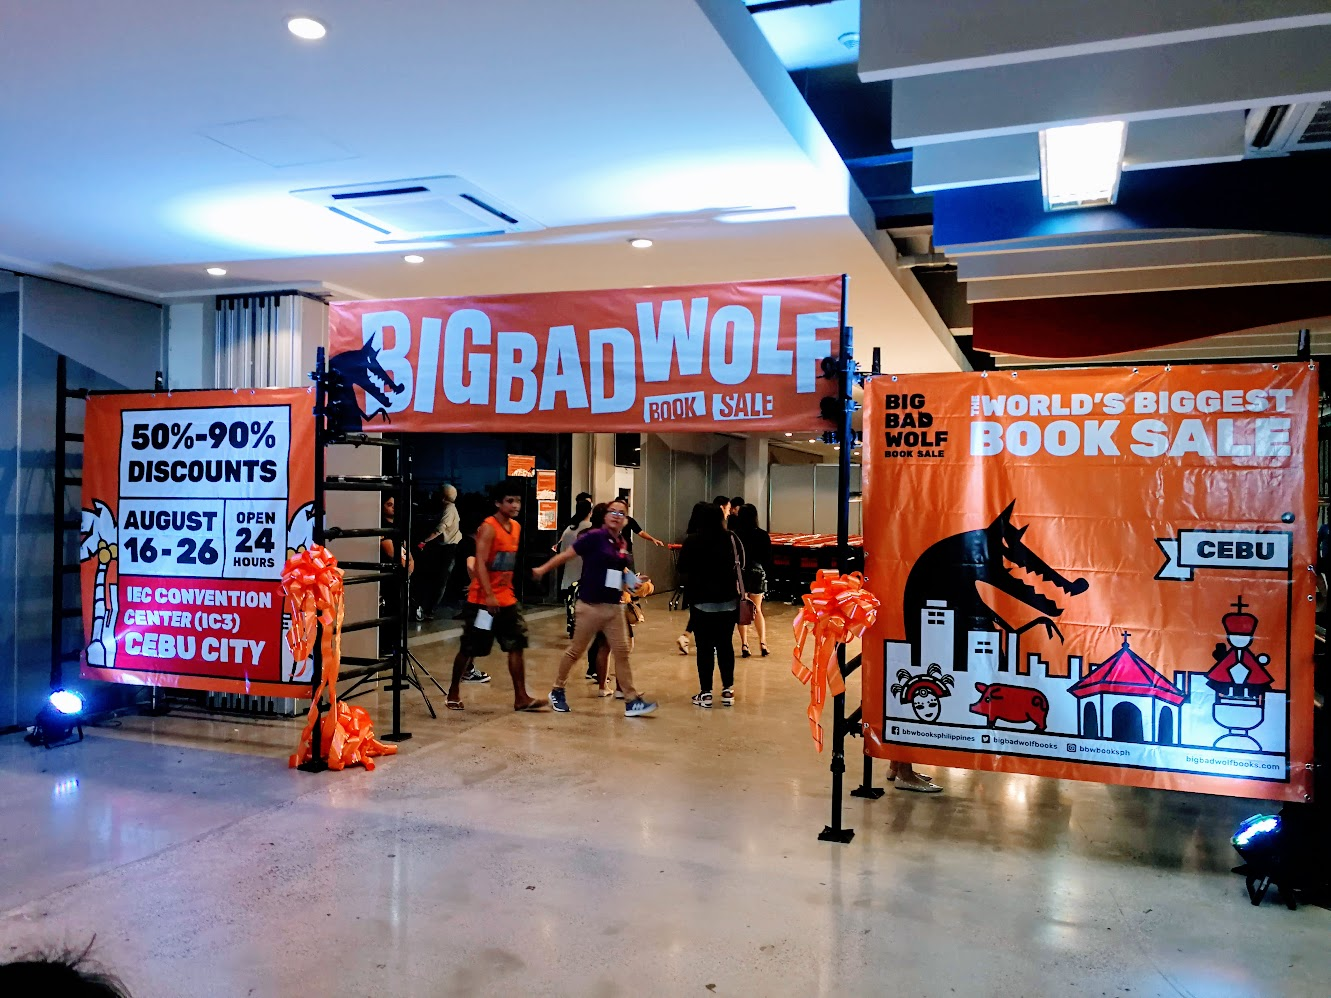 ig Bad Wolf Book Sale Cebu 2019